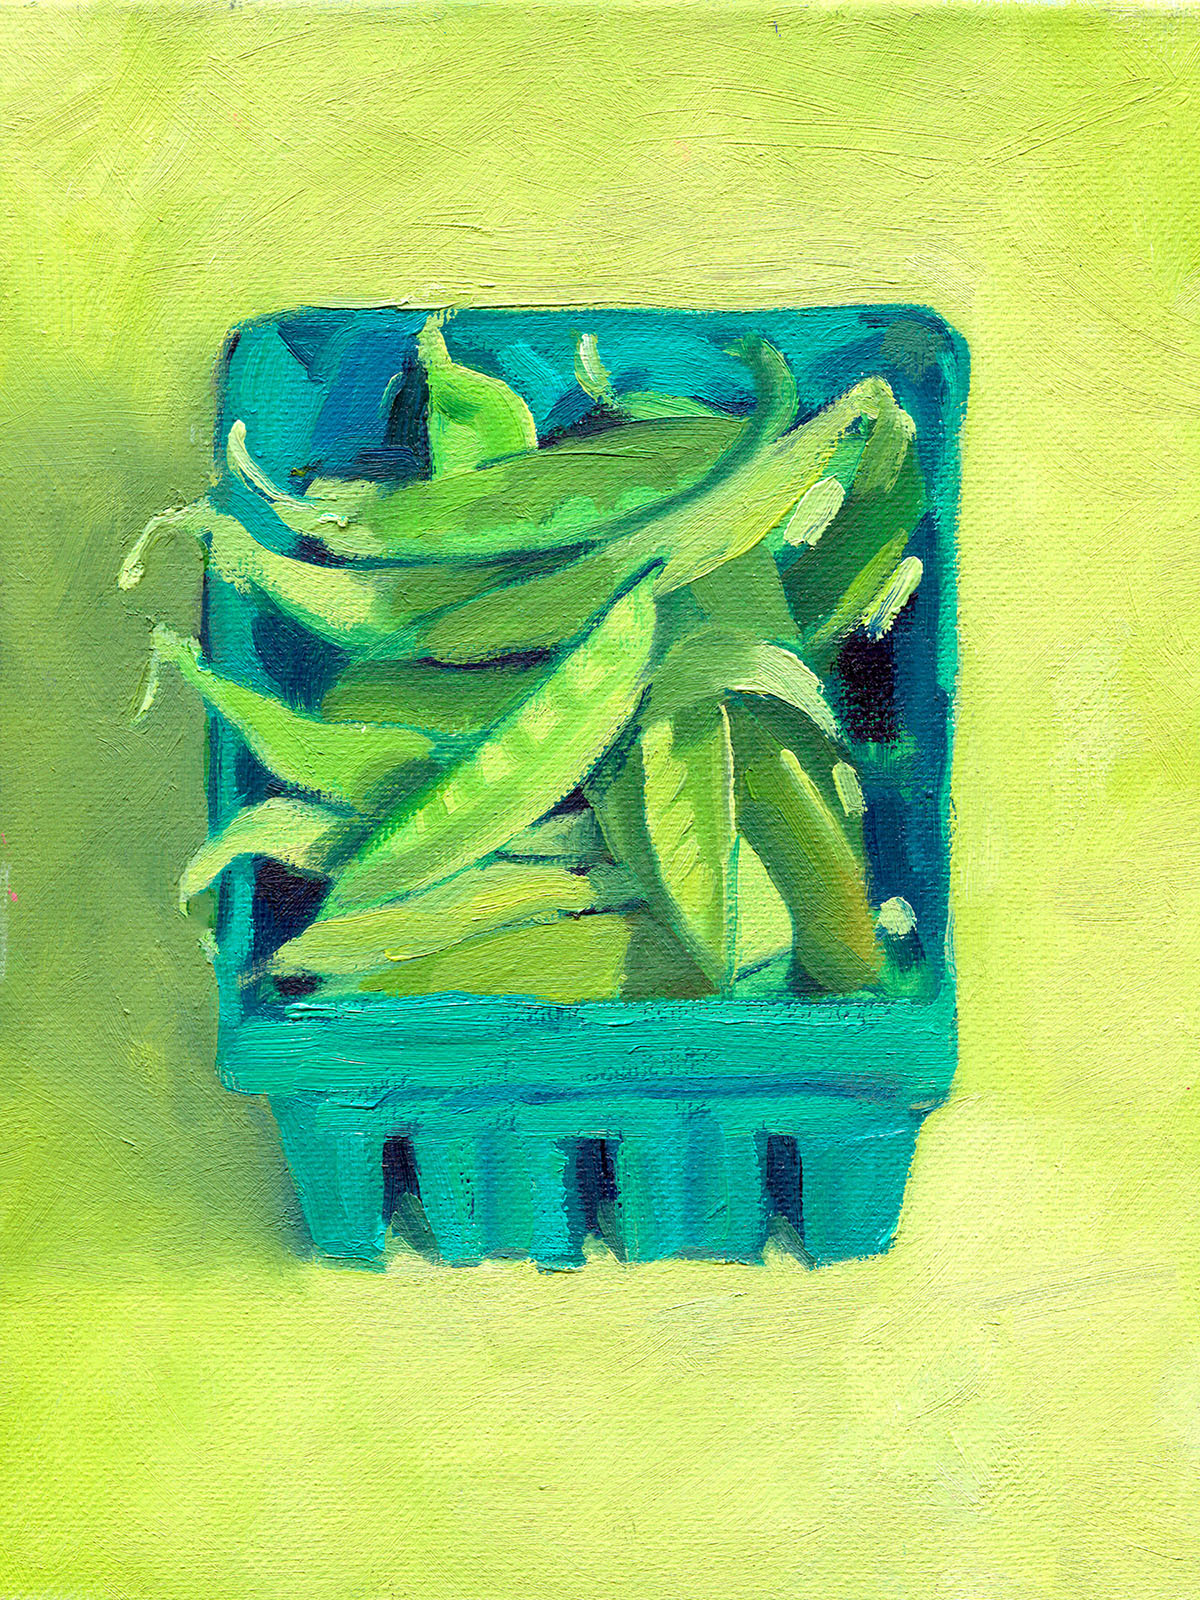 Late Season Peas Harvested from CSA